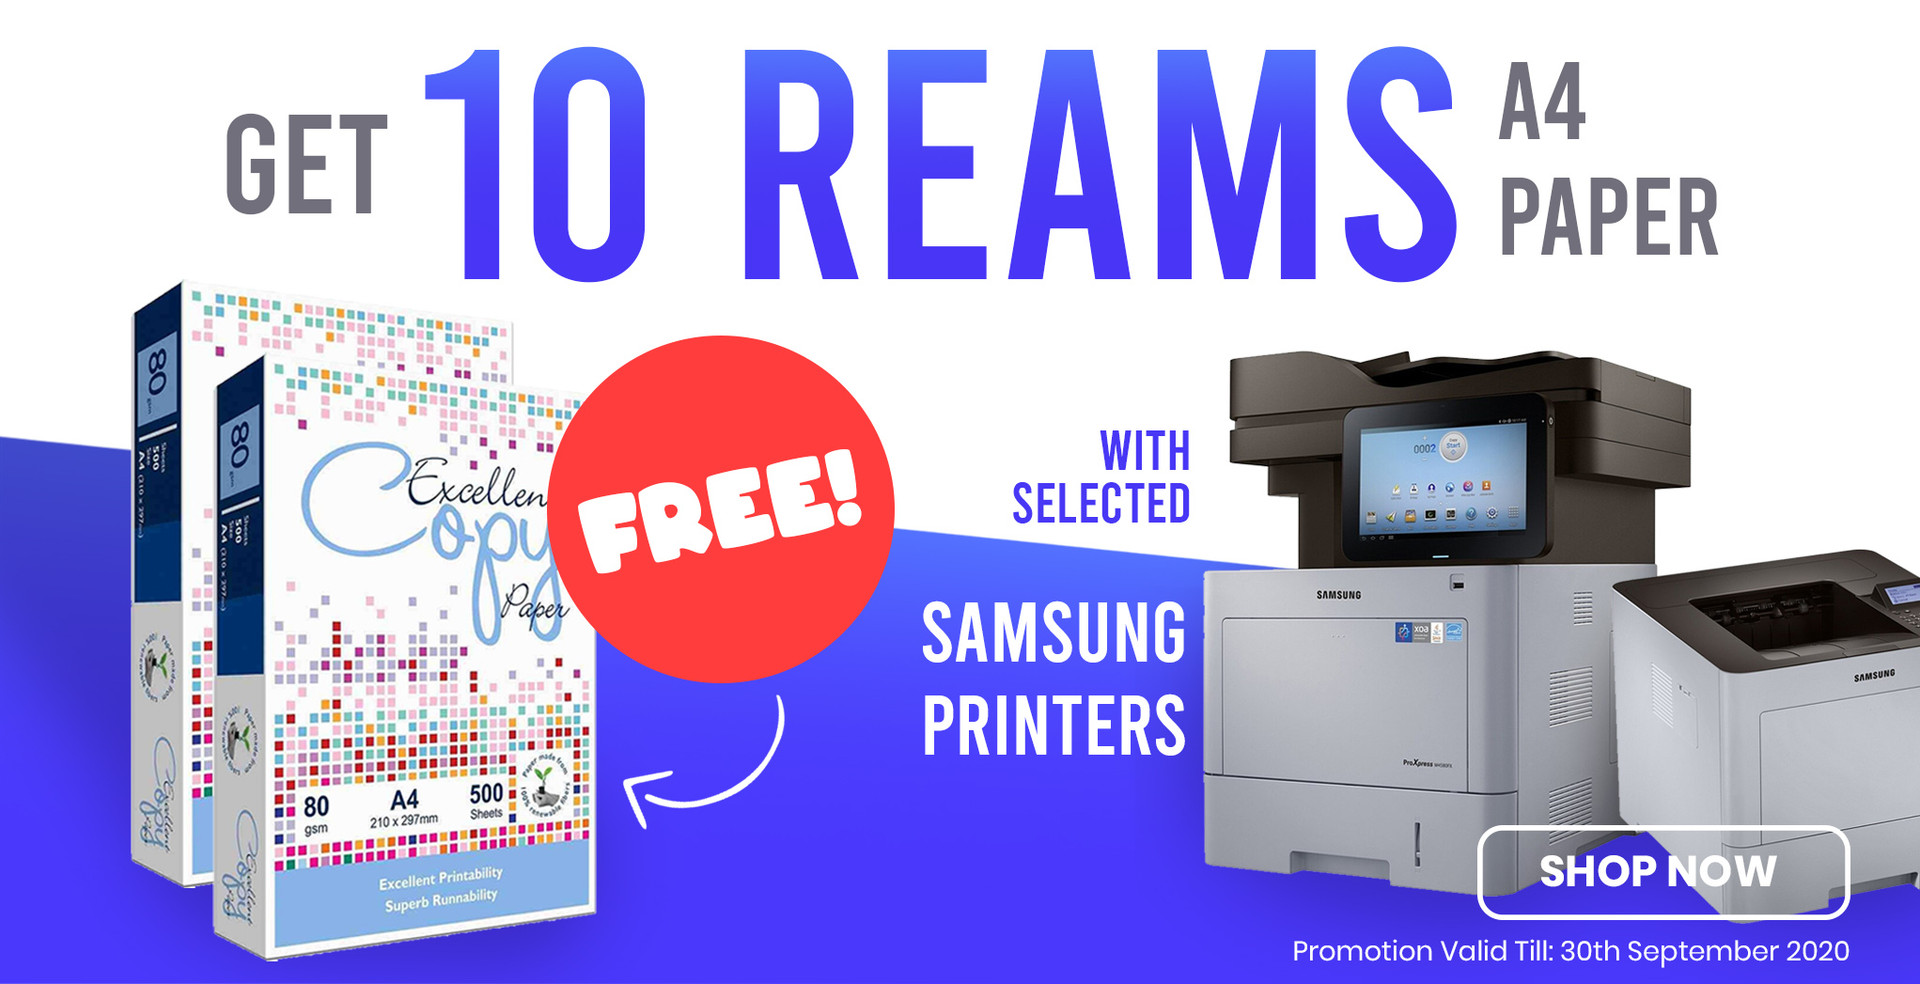 Get 10 Reams of A4 Paper with Selected Samsung Printers